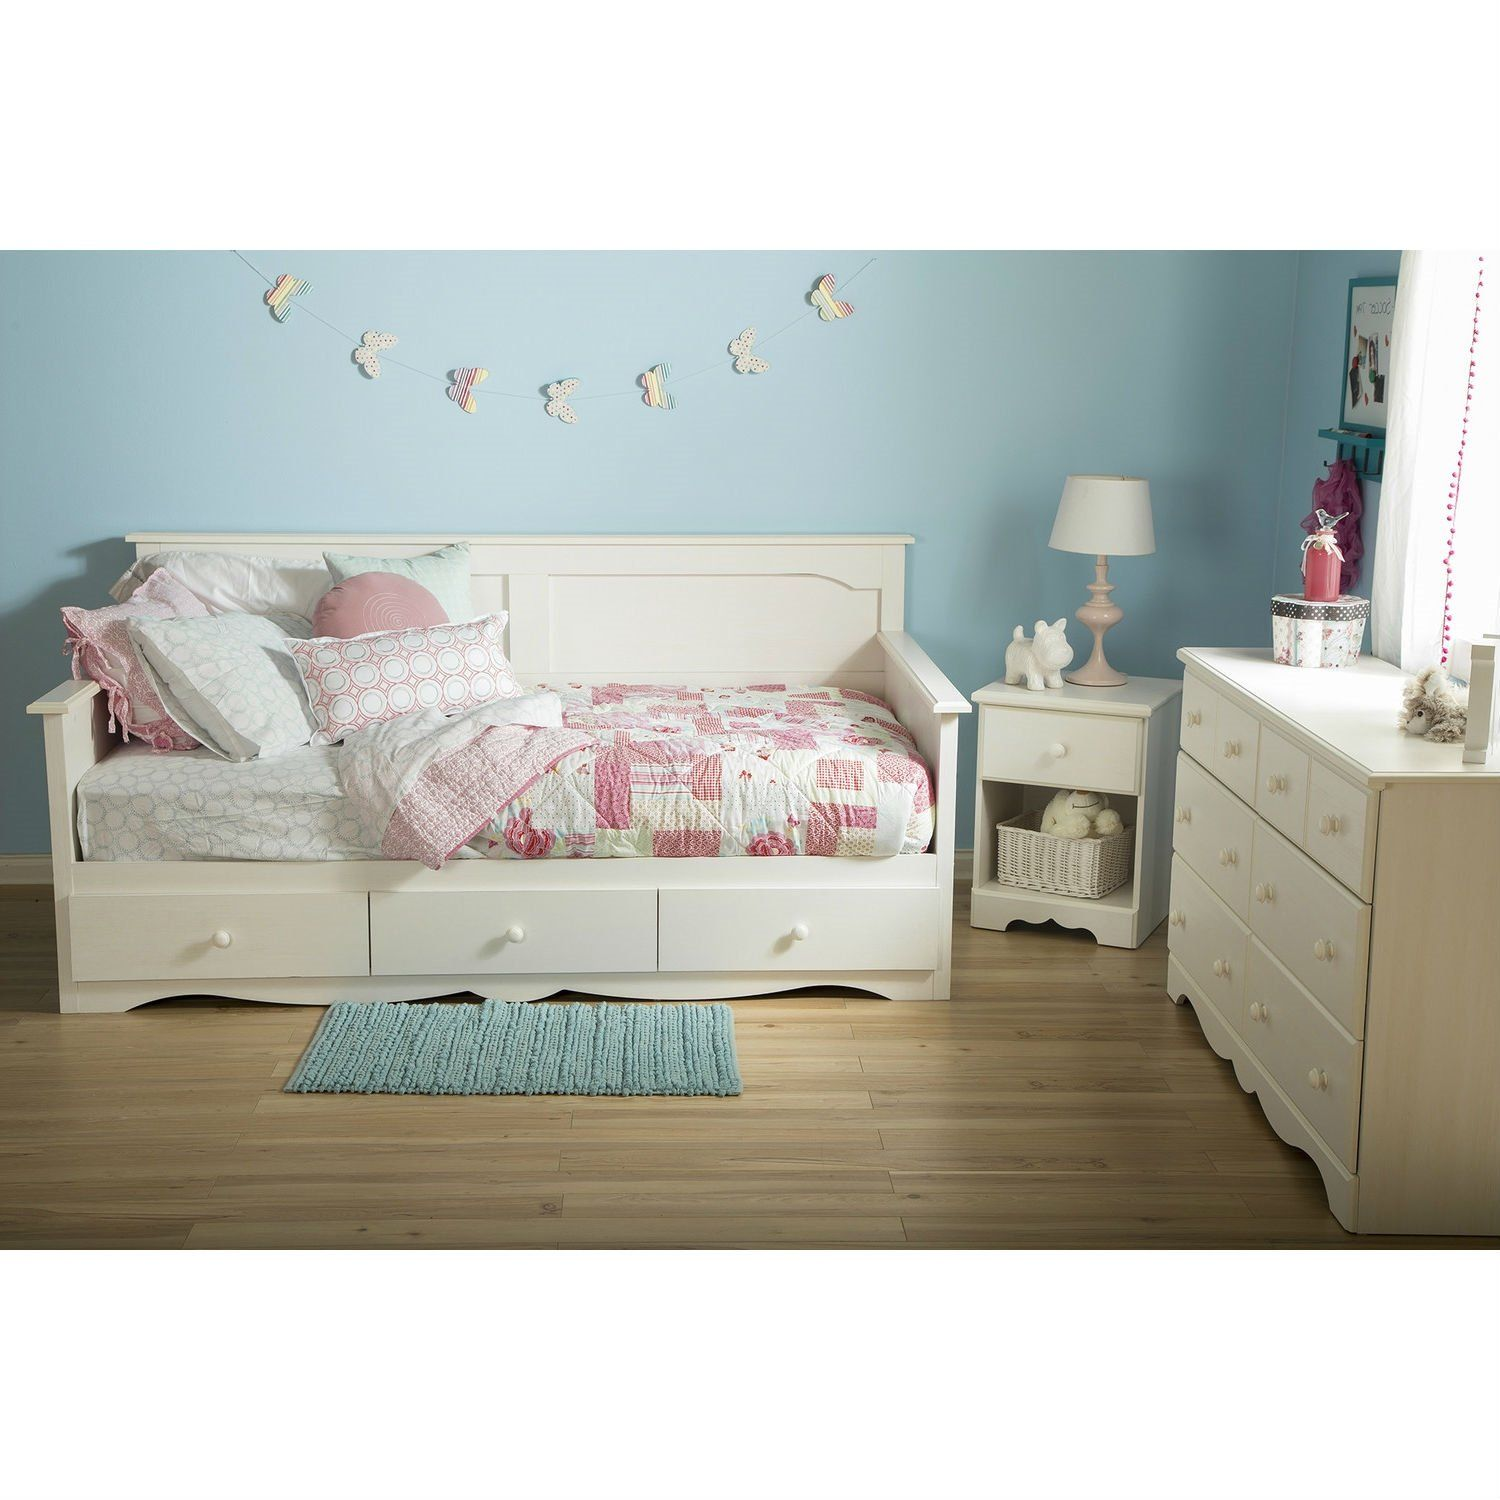 This Twin size Country Style White Wood Daybed with 3